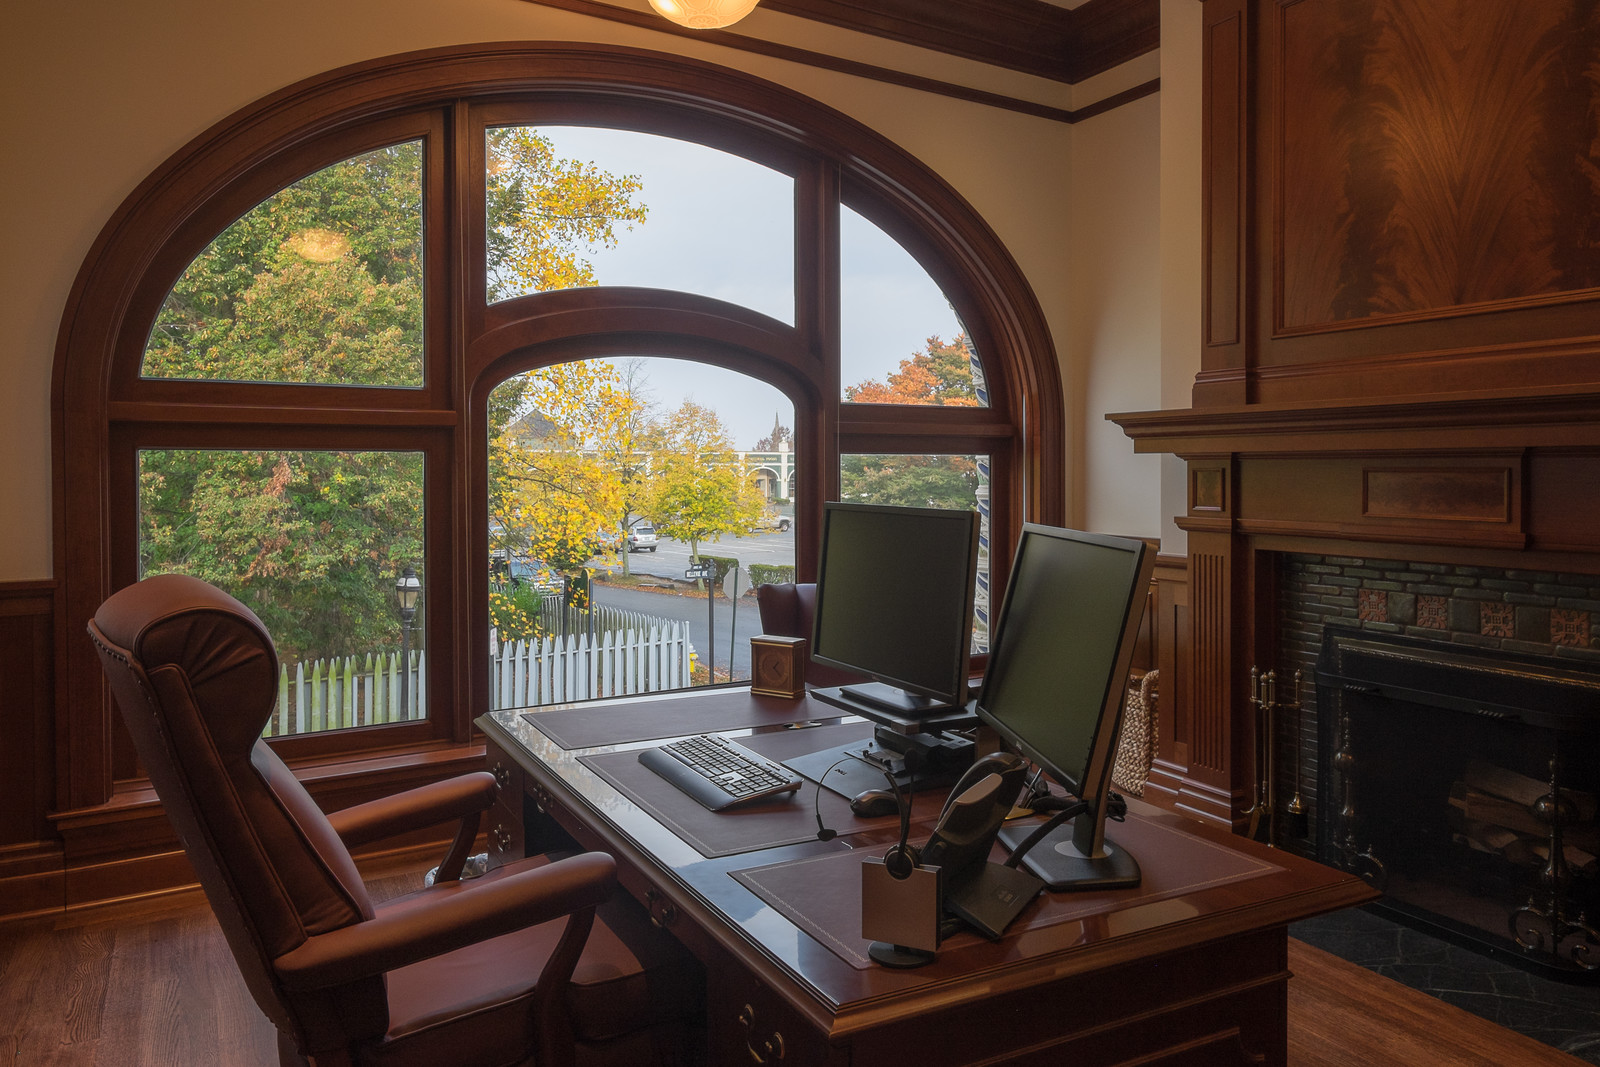 Another view of our Newport, RI custom office